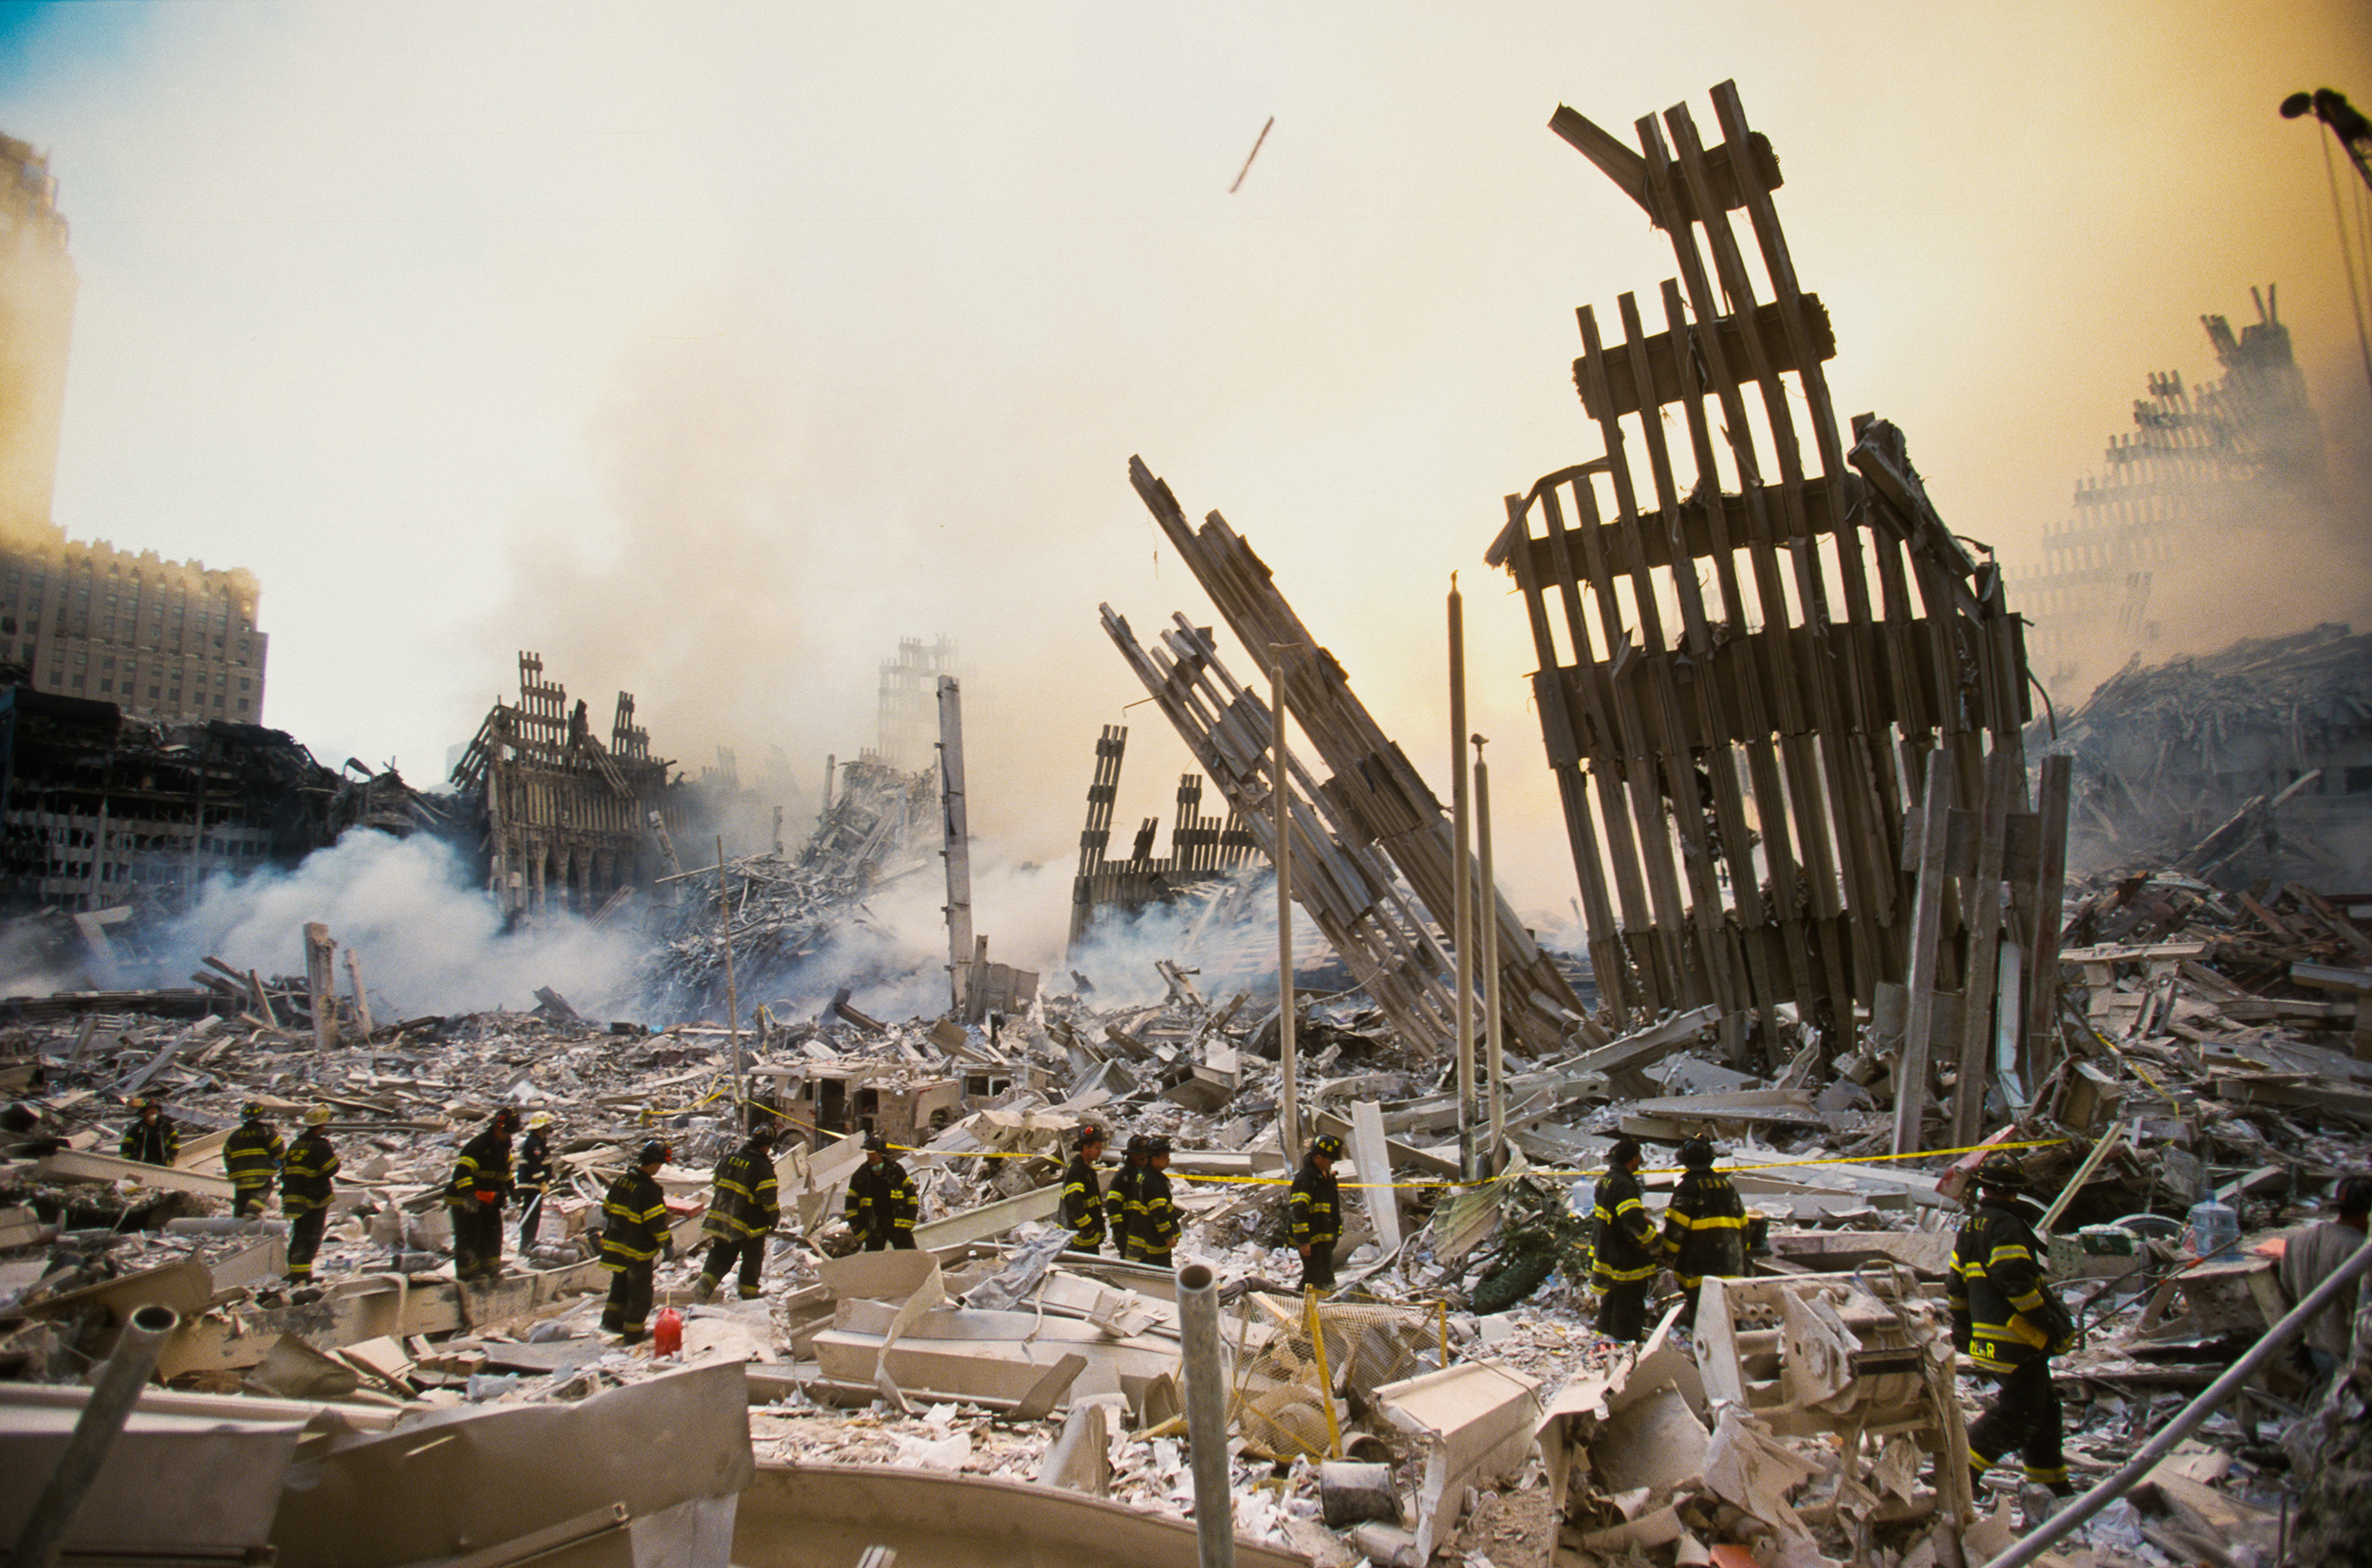 9/11 families to President Biden: Don't come to our memorial events